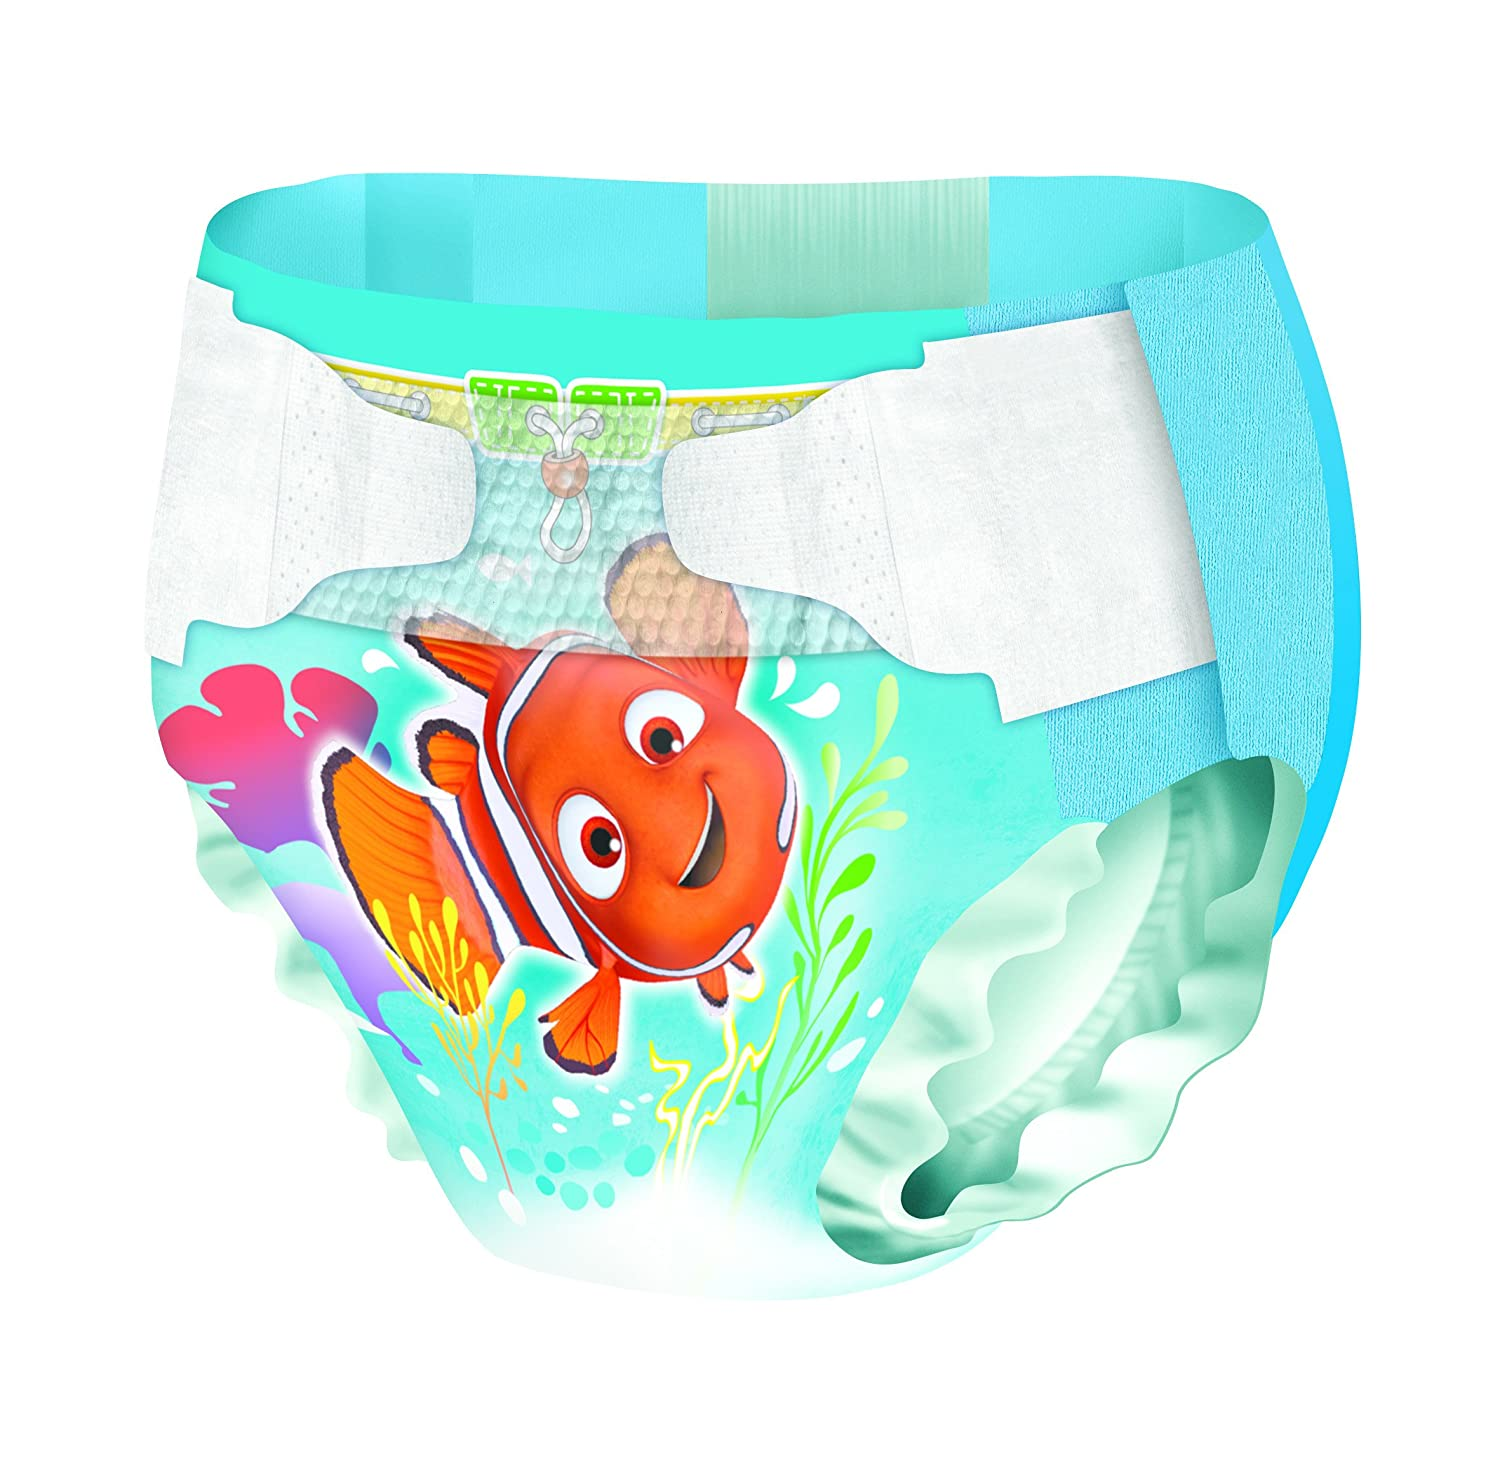 Huggies Little Swimmers Nappies - Size 2-3, 2 x Packs of 12 (24 Nappies) Kimberly-Clark 2183411